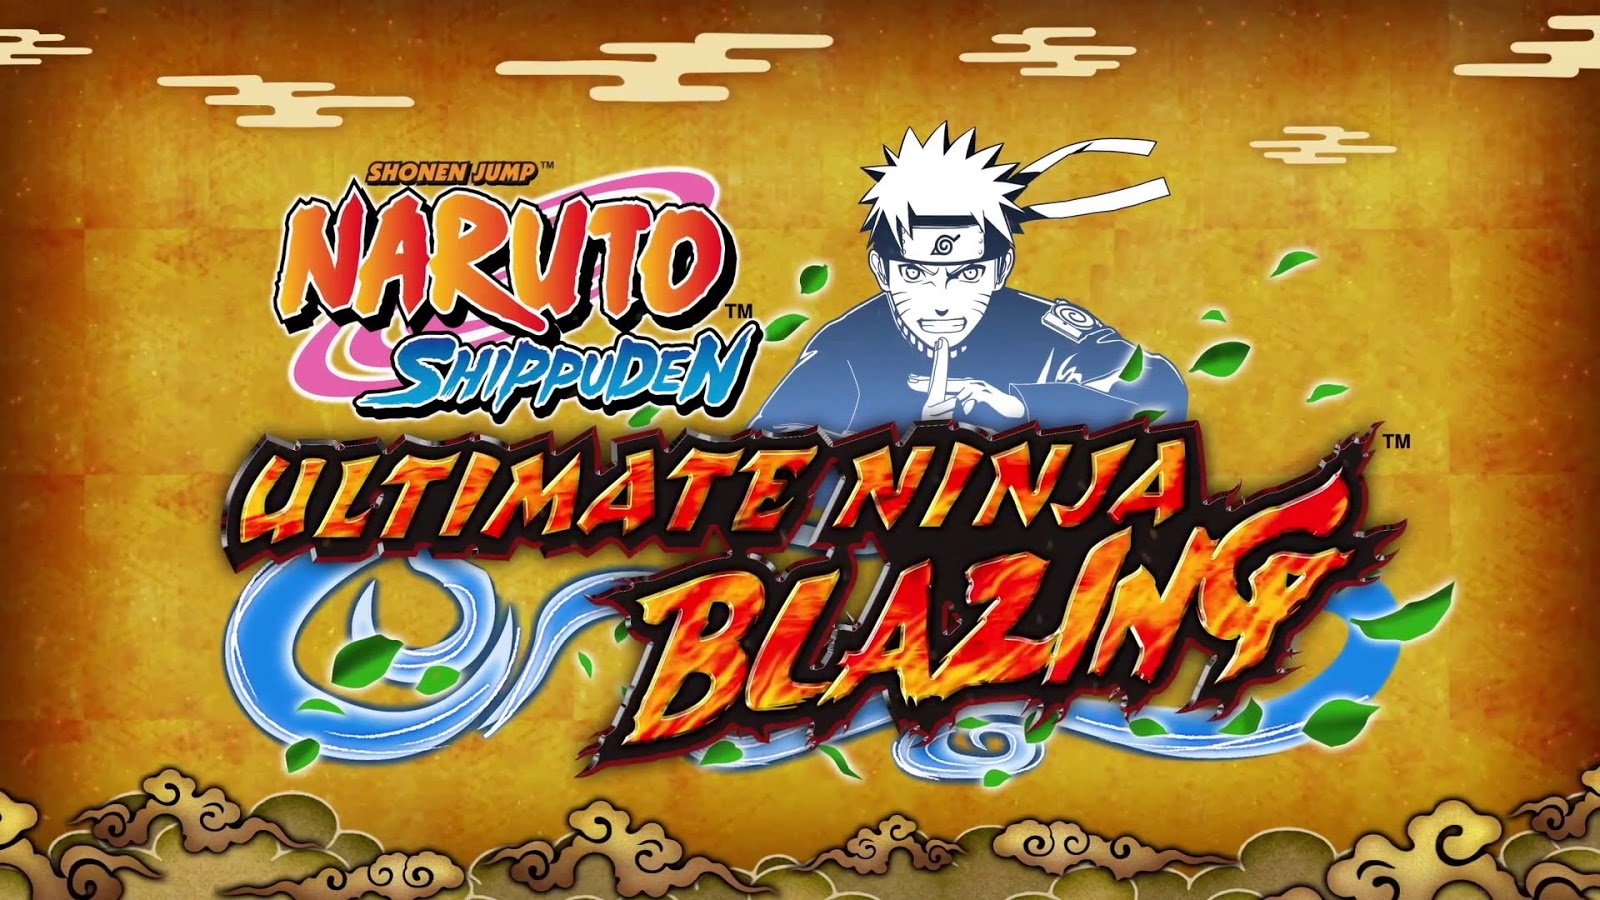 Ultimate Naruto Rpg Game